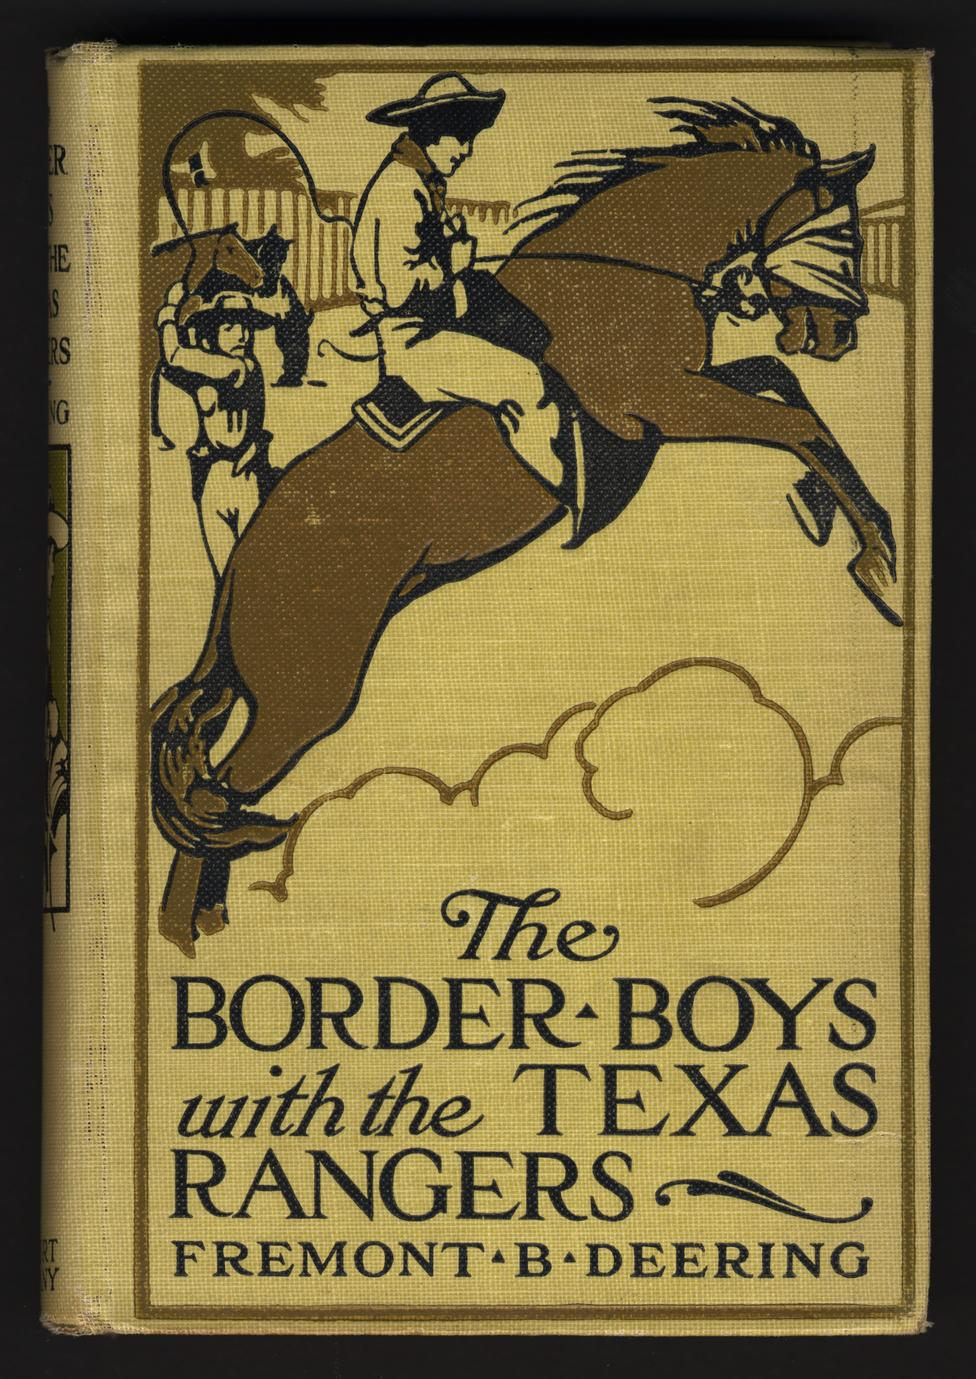 The border boys with the Texas Rangers (1 of 2)